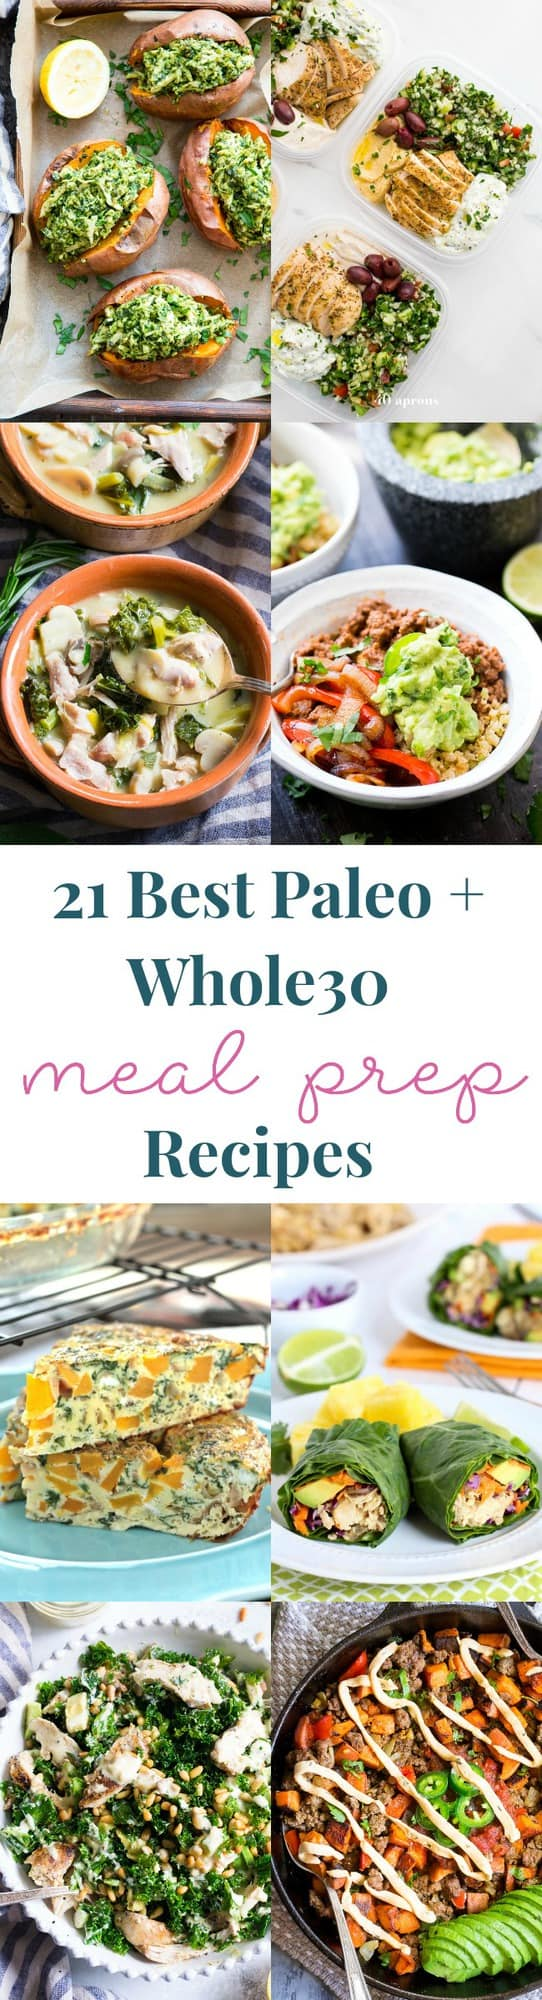 21 of the best paleo and whole30 recipes for meal prep - lots to choose from for breakfast, lunch, and dinner! All are gluten-free, dairy-free, added sugar free, paleo and Whole30 compliant